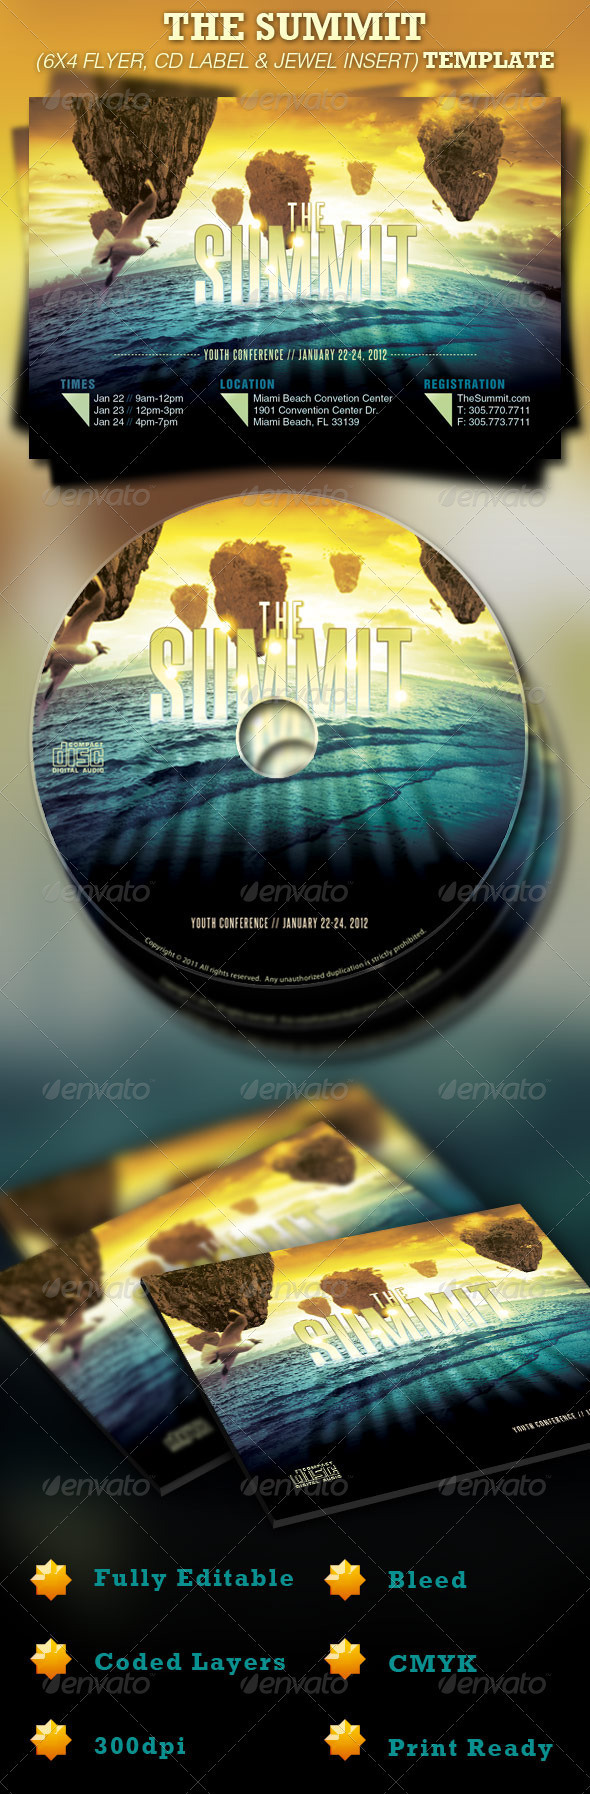 The Summit Church Flyer and CD Template - Church Flyers